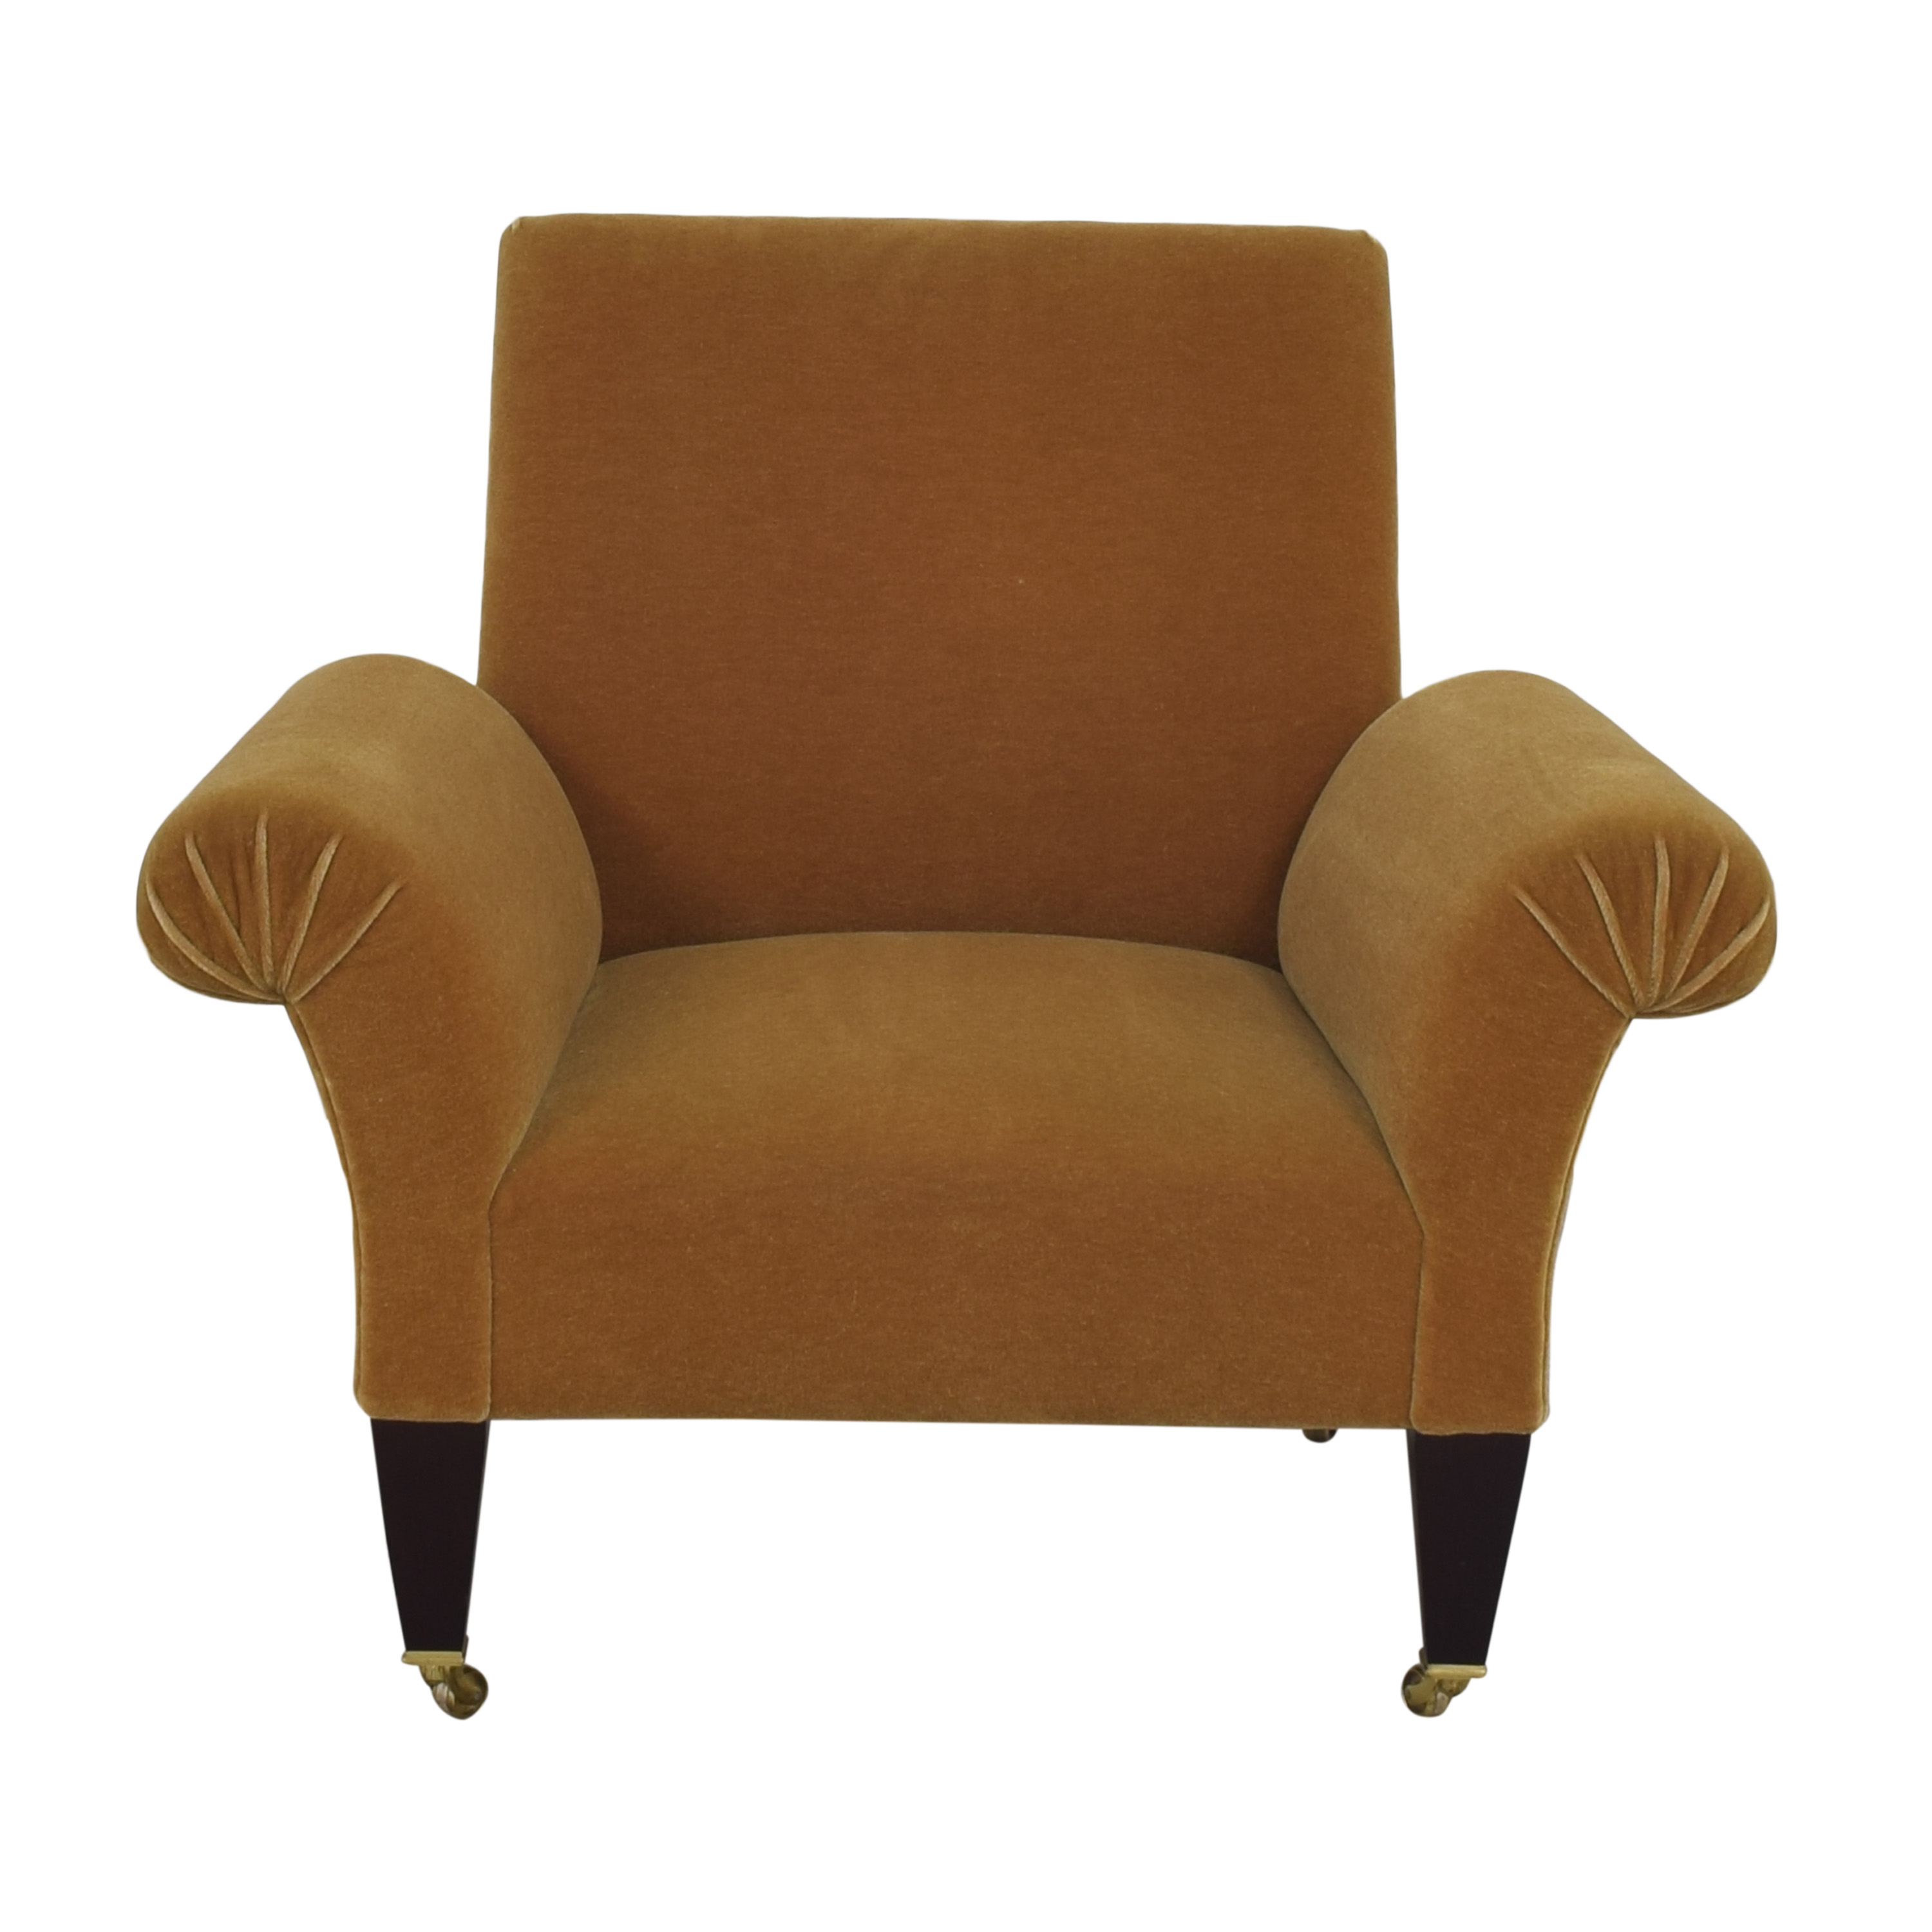 George Smith George Smith Butterfly Accent Chair Accent Chairs